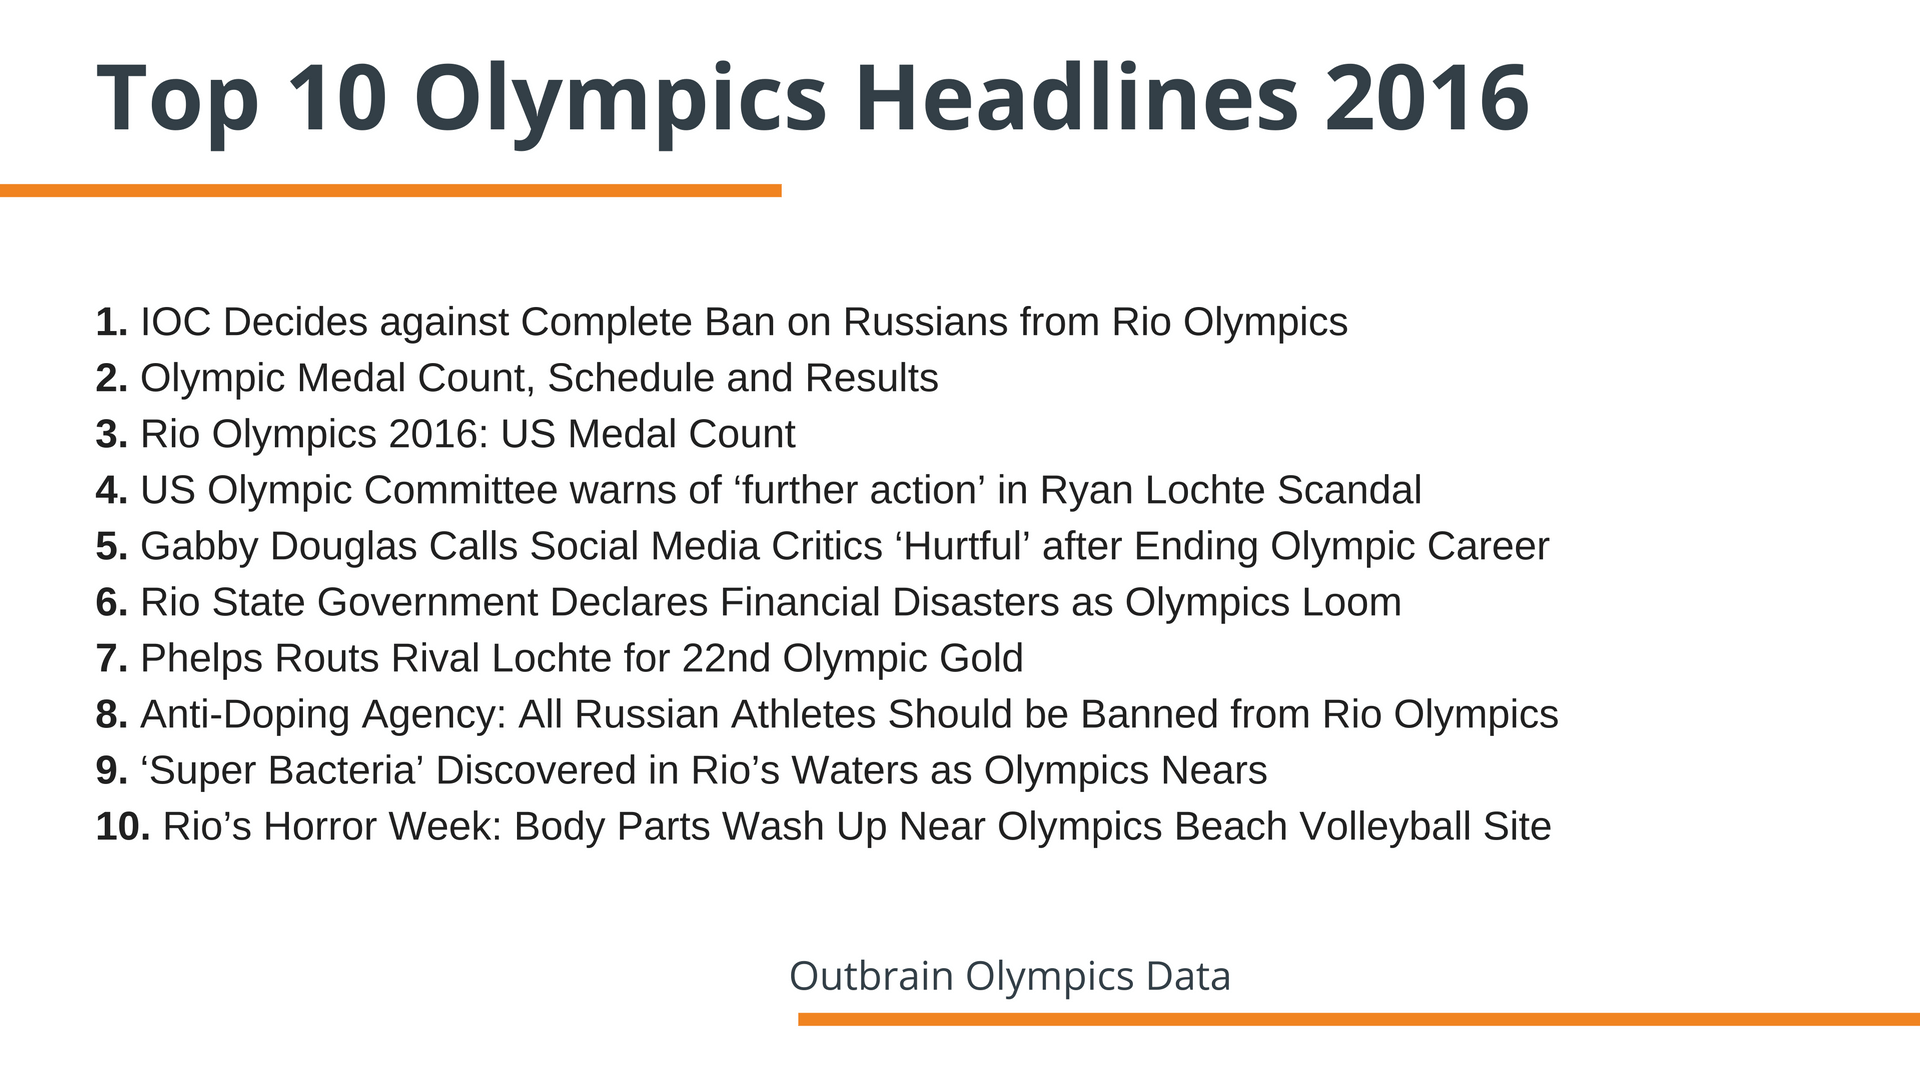 topolympicheadlines2016_outbrain